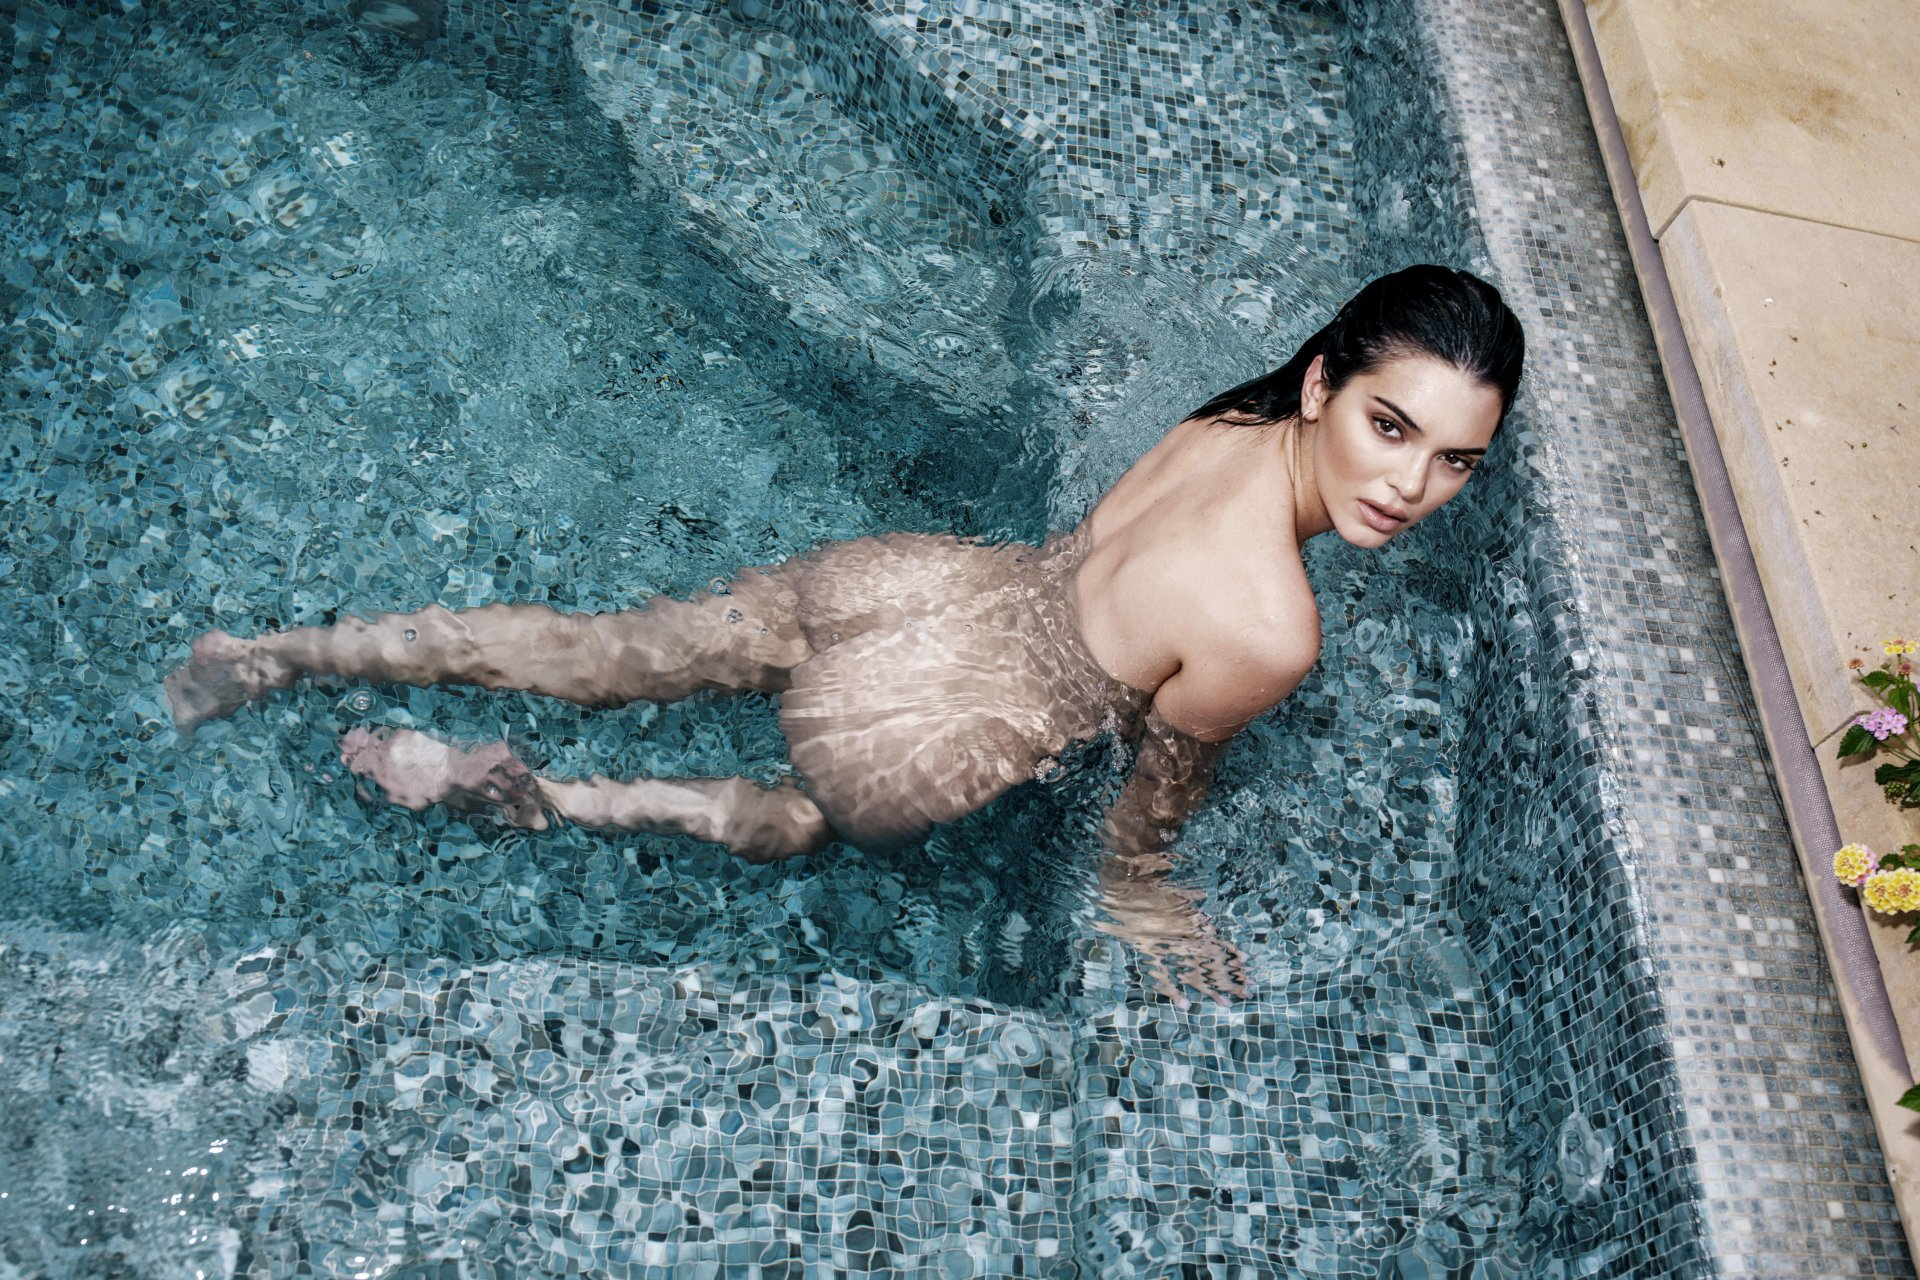 Kendall-Jenner-Nude-TheFappeningBlog.com-2.jpg